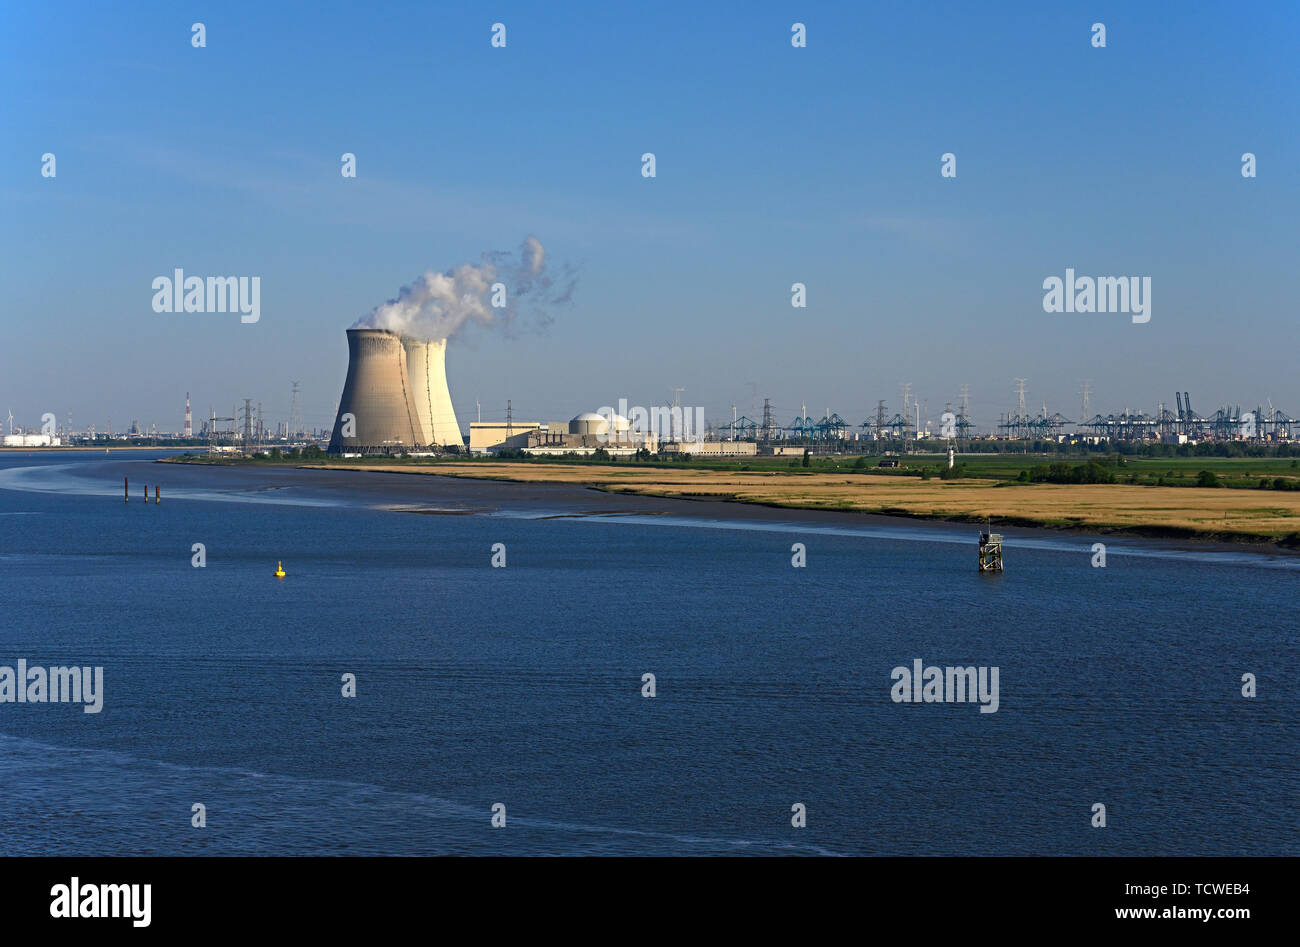 antwerp, belgium - 2019.05.15:  panoramic view over river schelde onto doel nuclear power station and port of antwerp container terminals - Stock Image